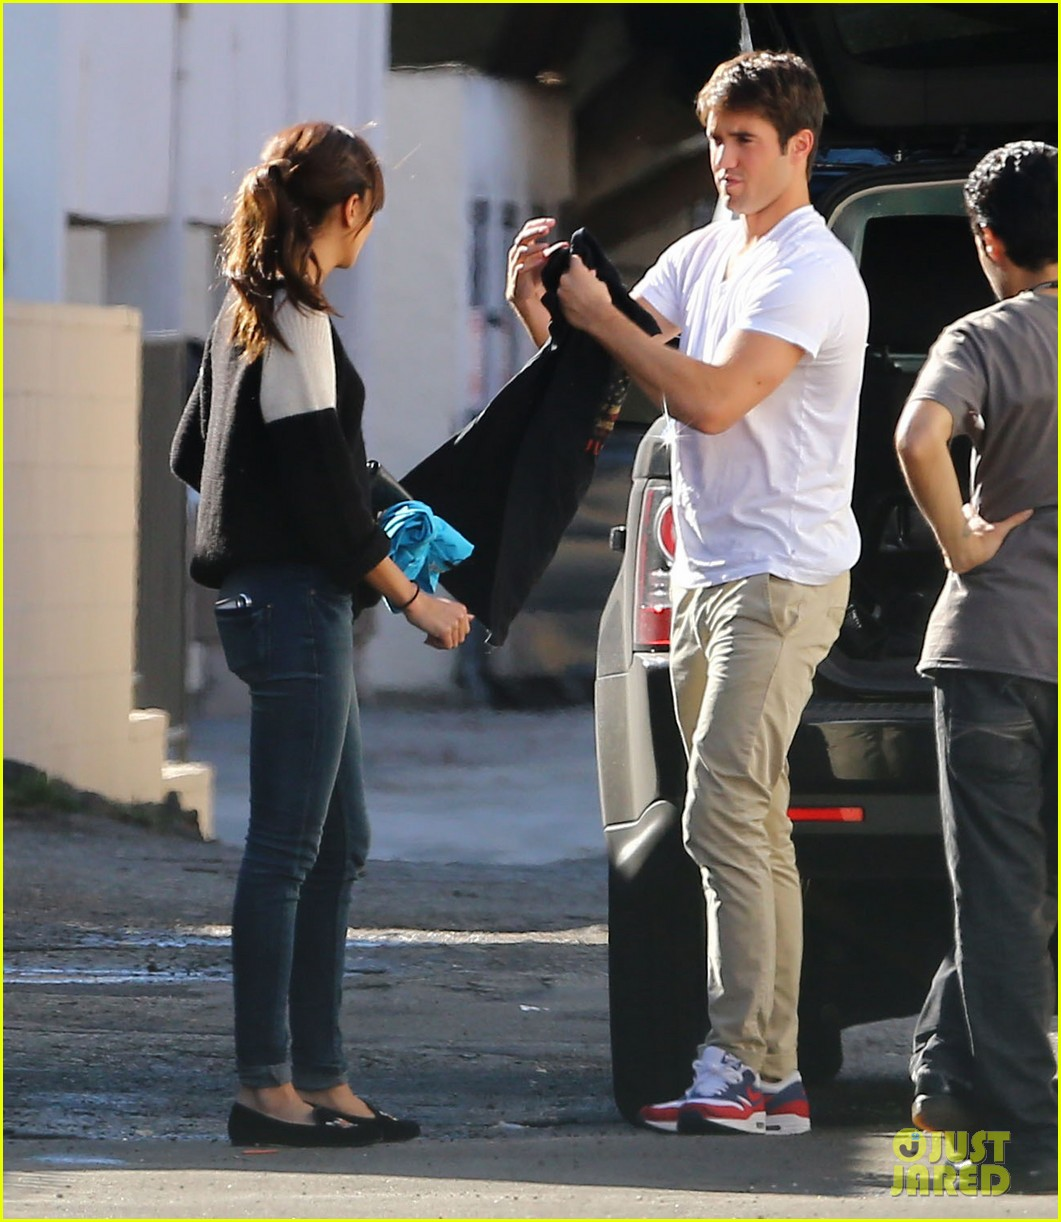 Full Sized Photo Of Joshua Bowman Ashley Madekwe Furniture Shopping 25 Photo 2744029 Just Jared